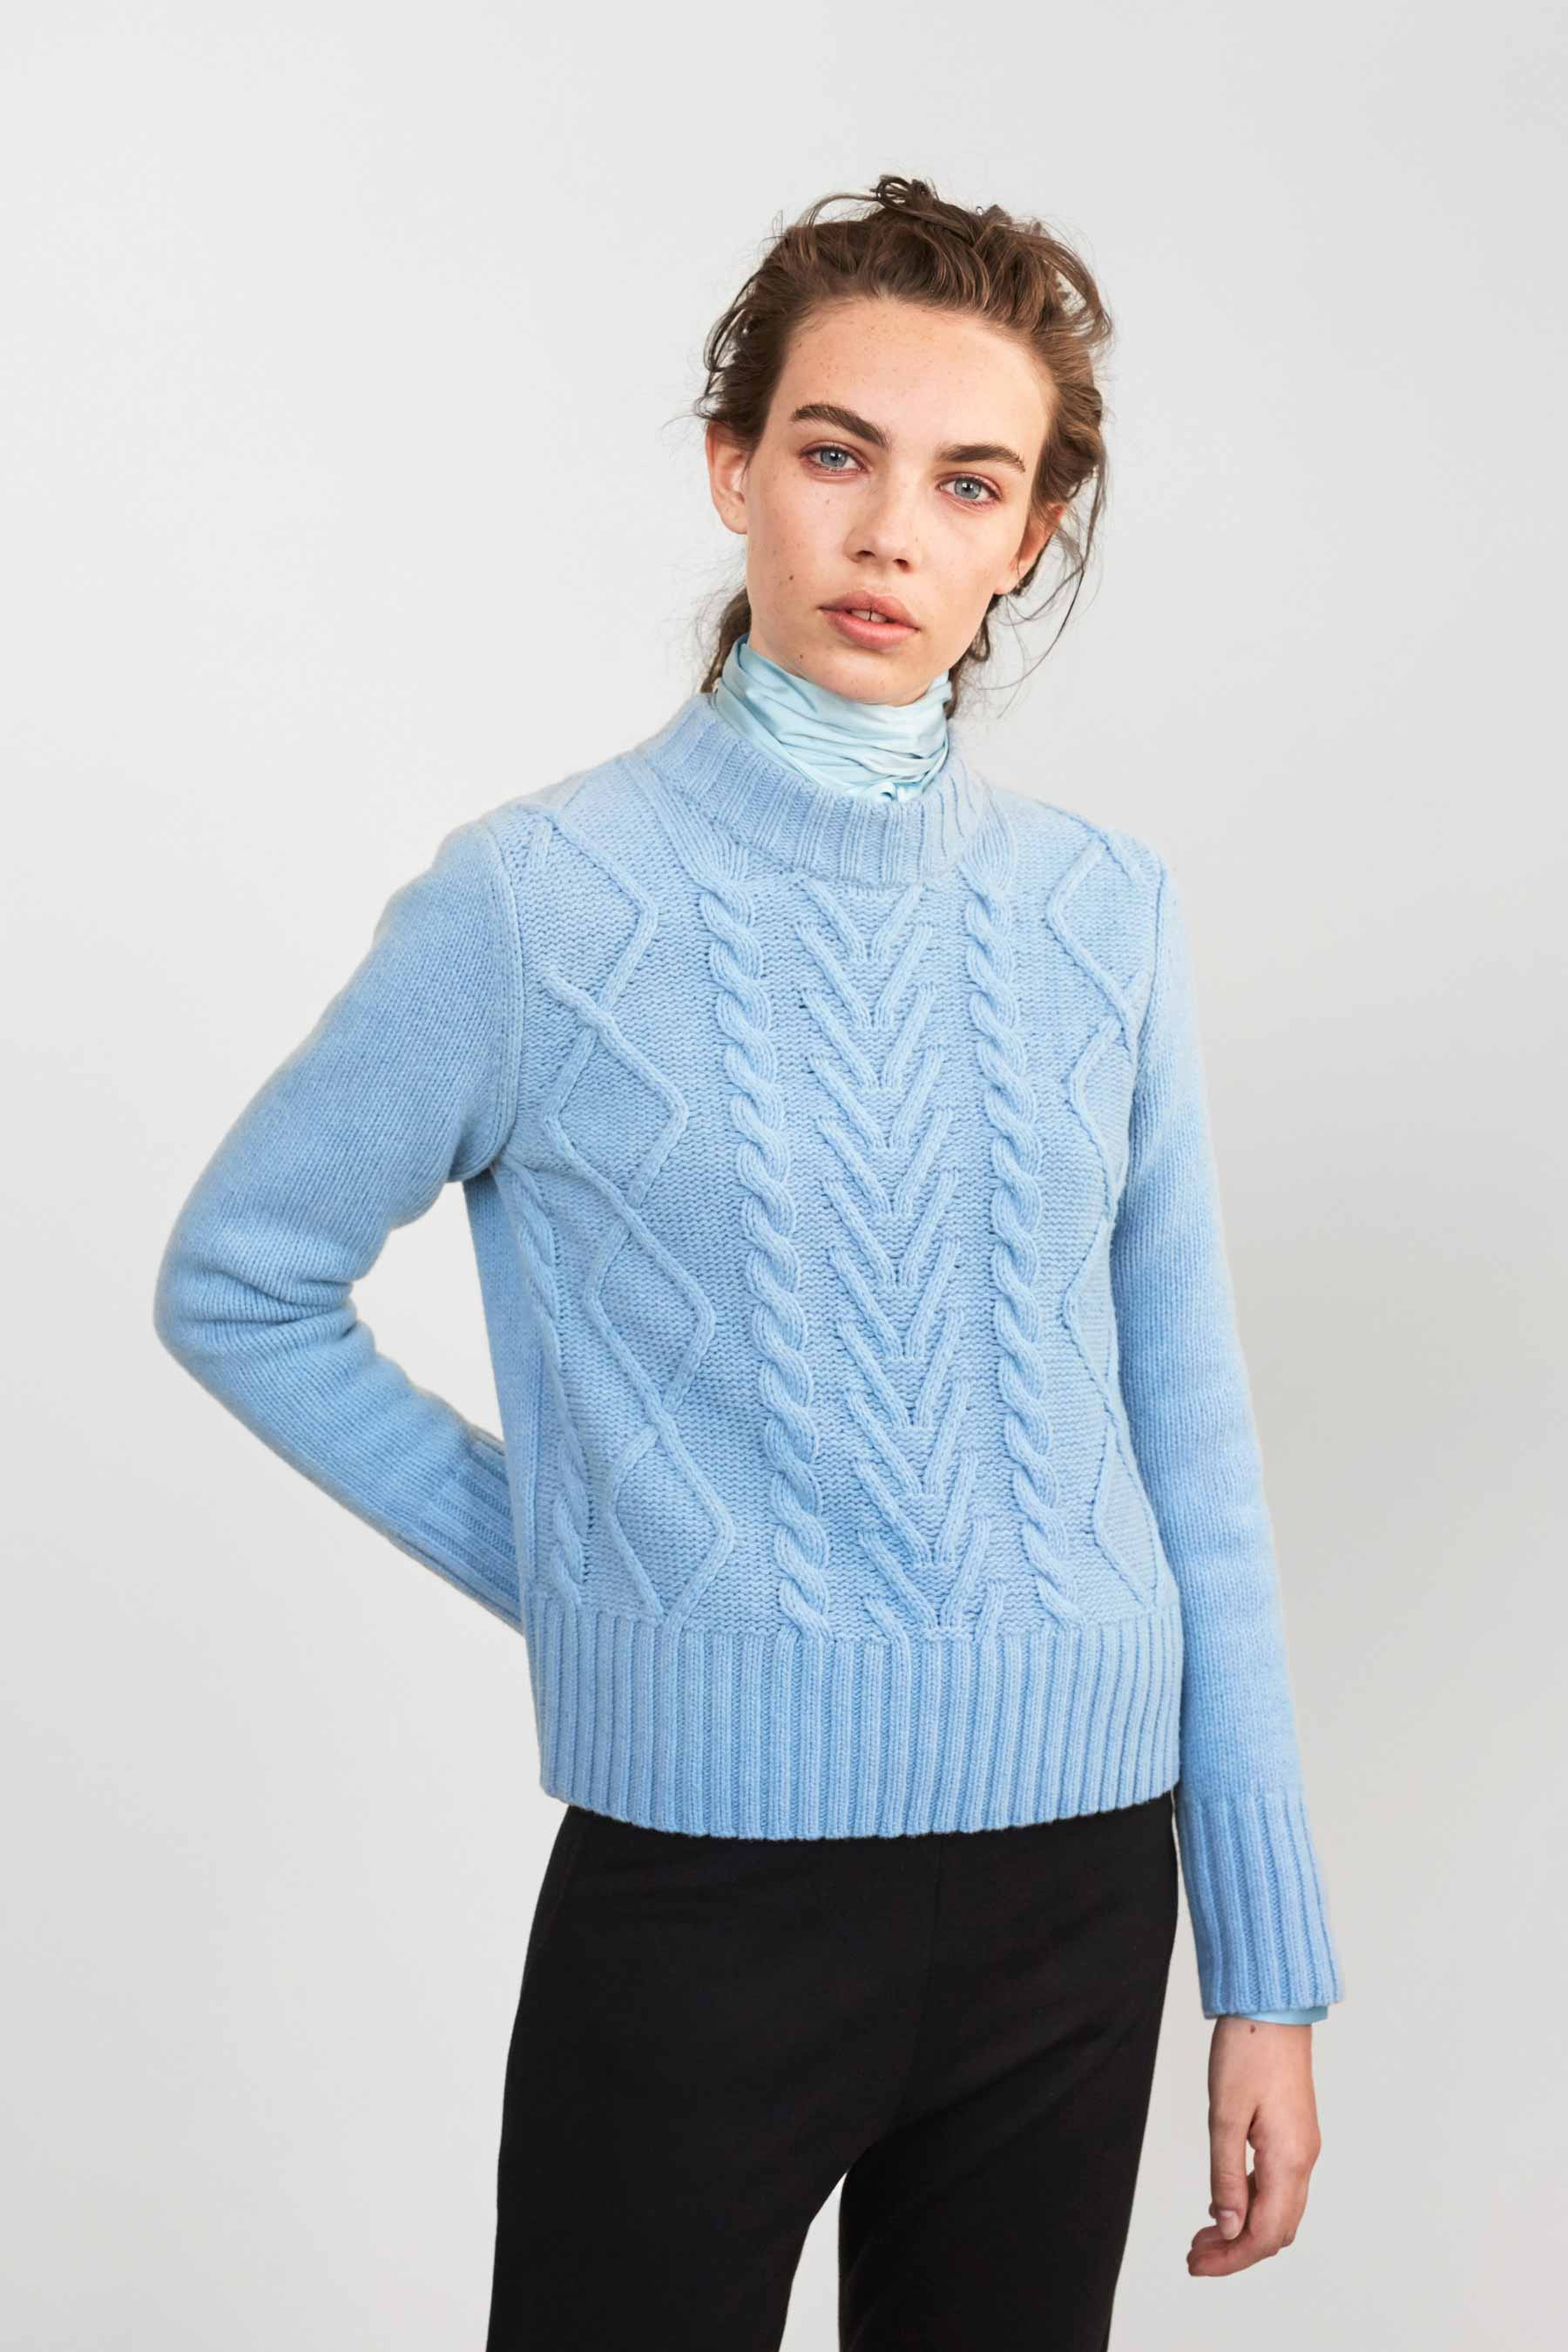 Cathrine Hammel - Cable Sweater - 1038